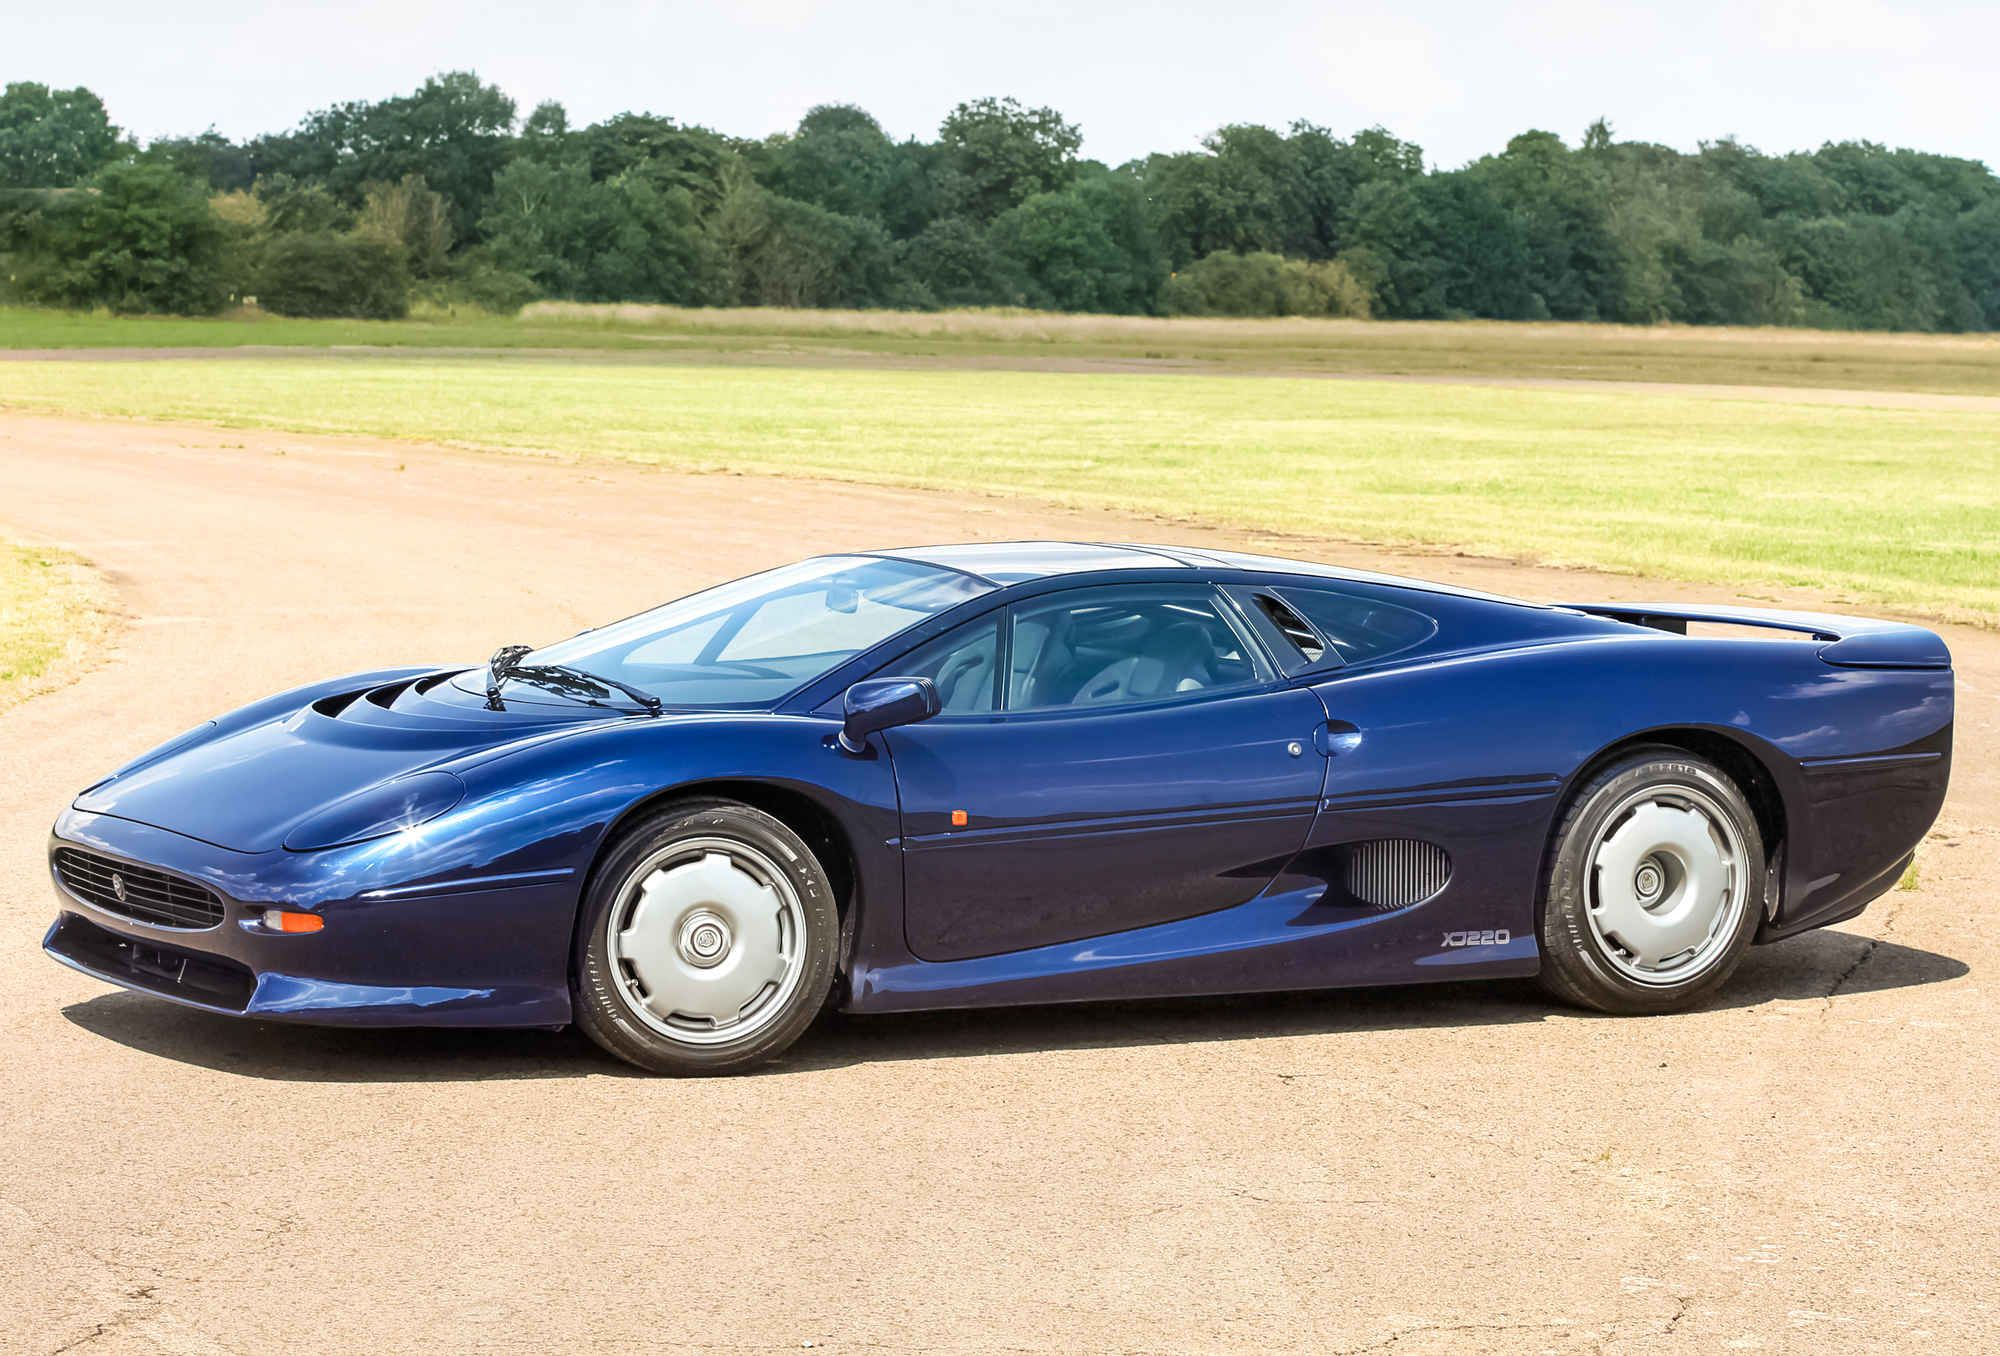 The Jaguar Xj220 Is The Perfect Supercar With Images Jaguar Xj220 Super Cars Sports Cars Luxury